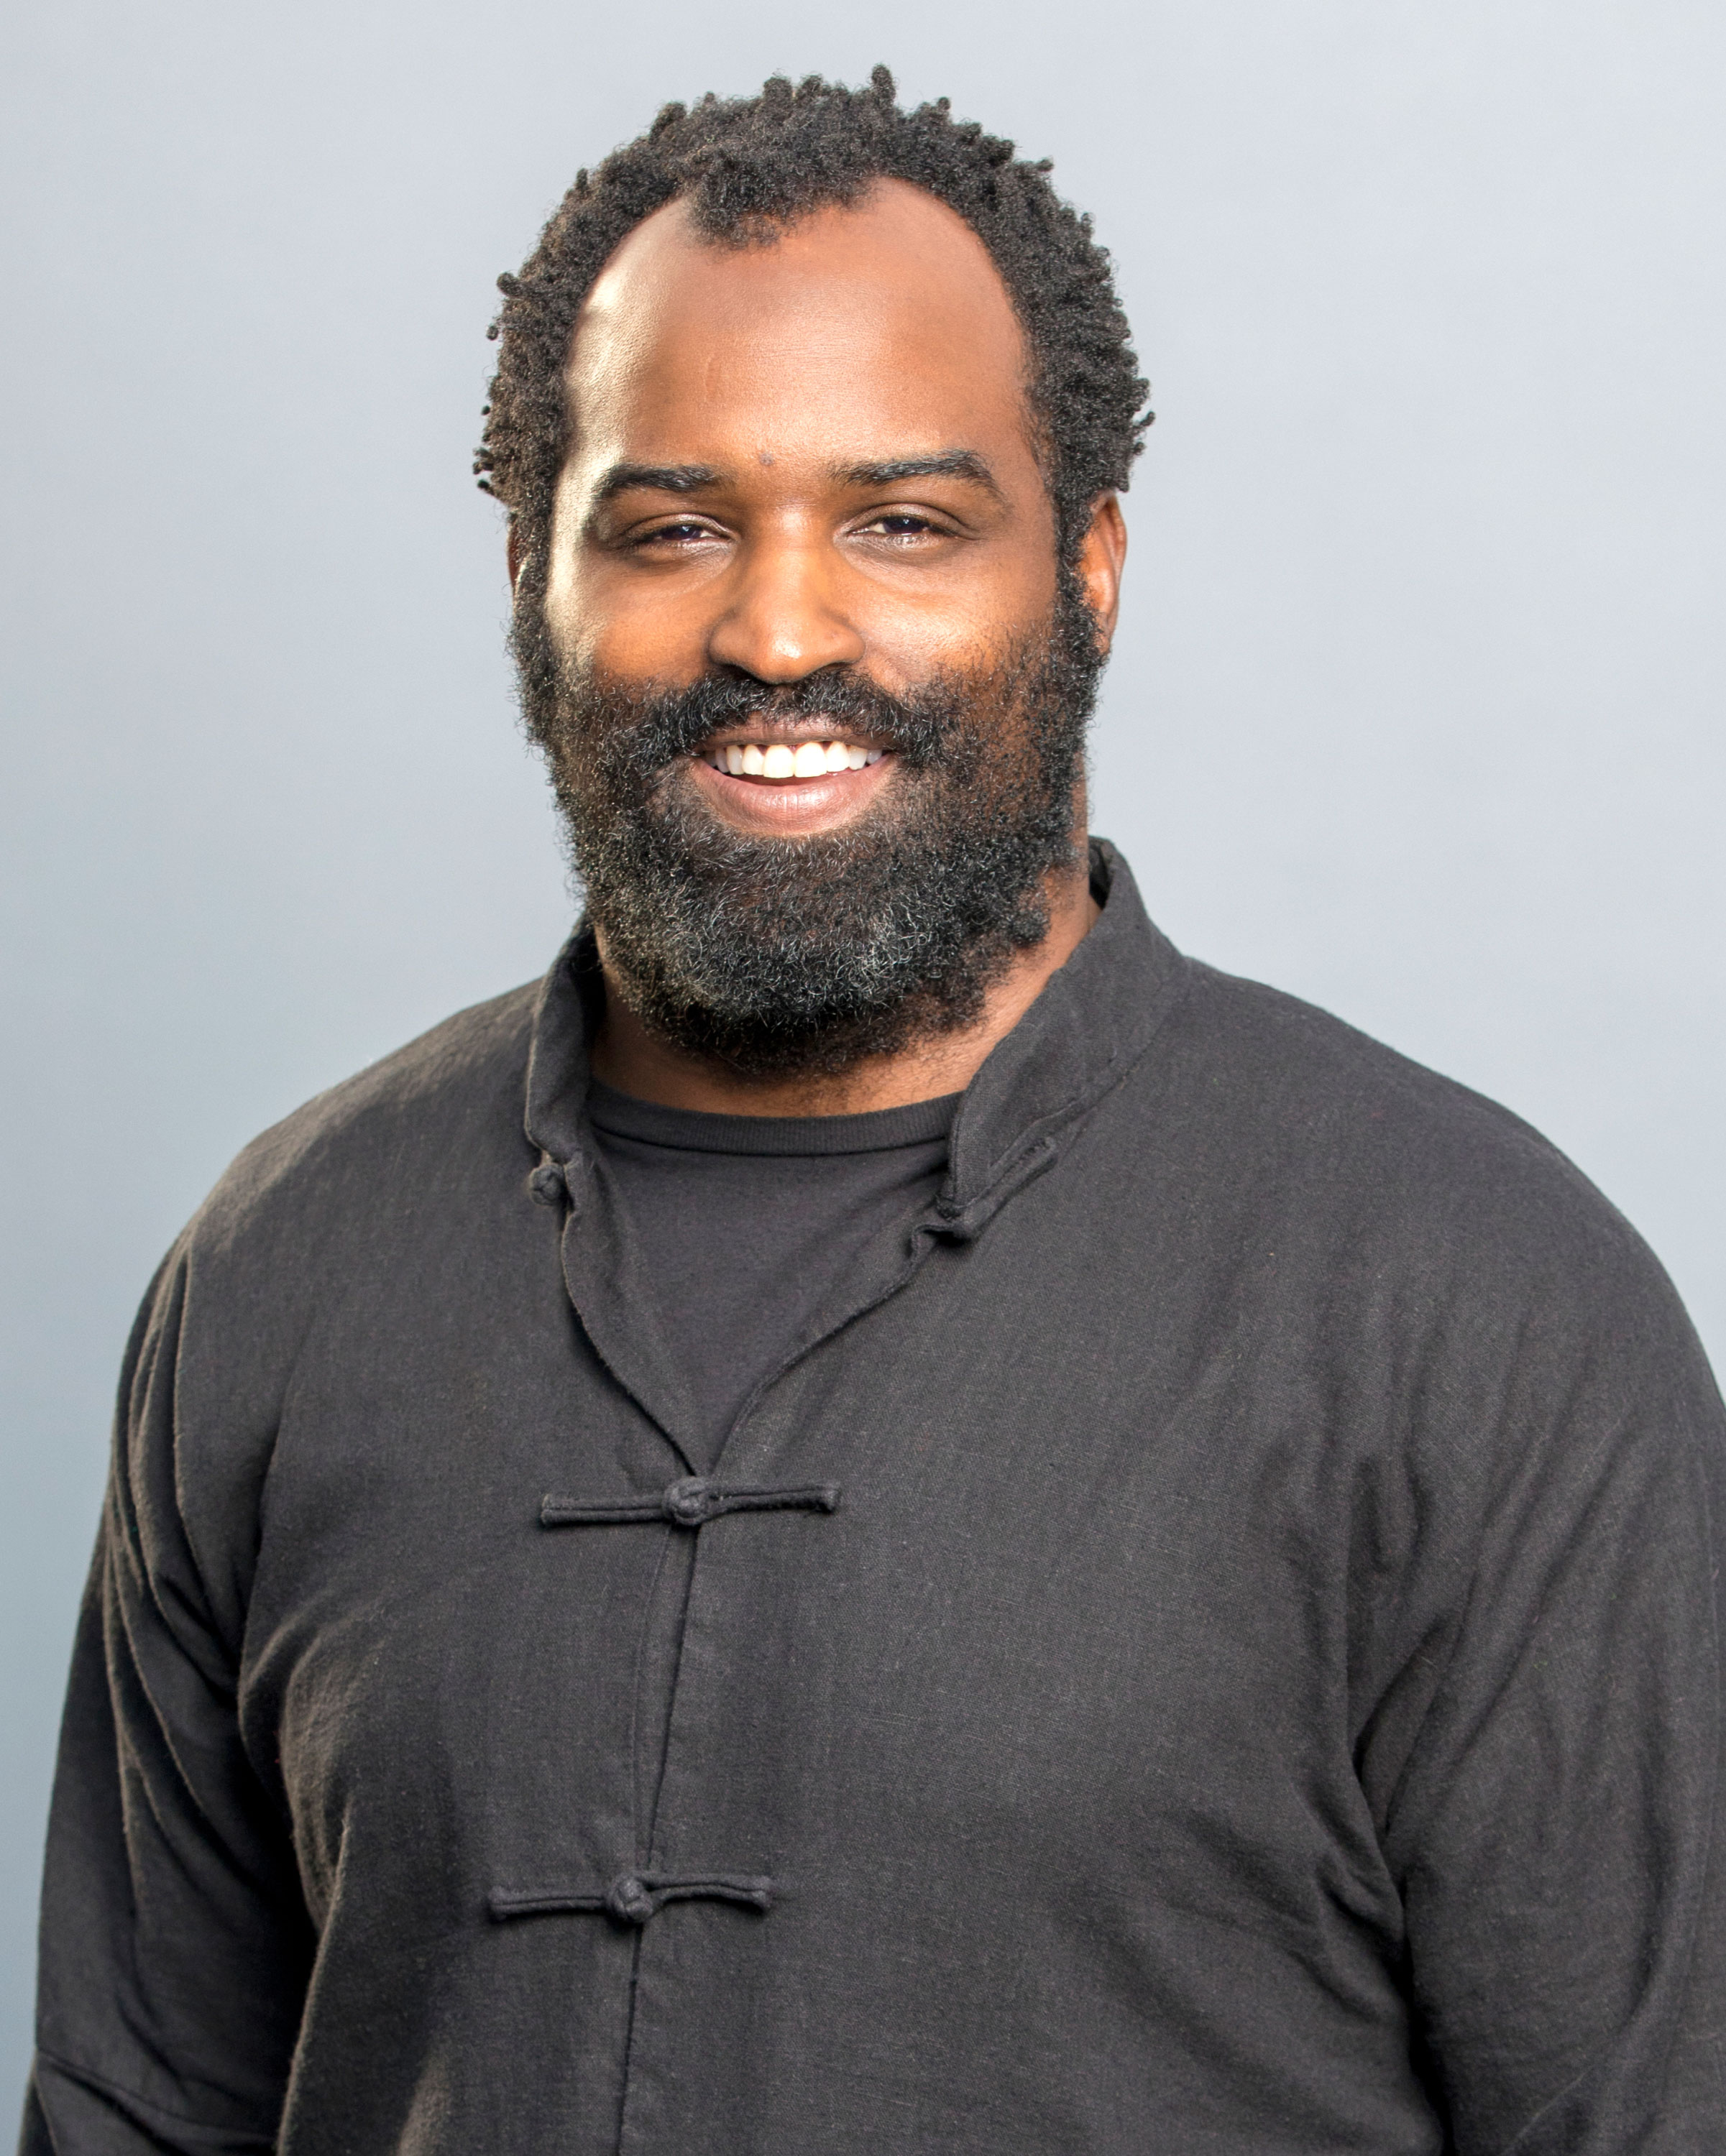 BIG-BROTHER-CELEBRITY-EDITION-Ricky Williams - Williams, 41, is a former NFL player. During his 12-year career, he played for the New Orleans Saints, Miami Dolphins and Baltimore Ravens before retiring in 2012.